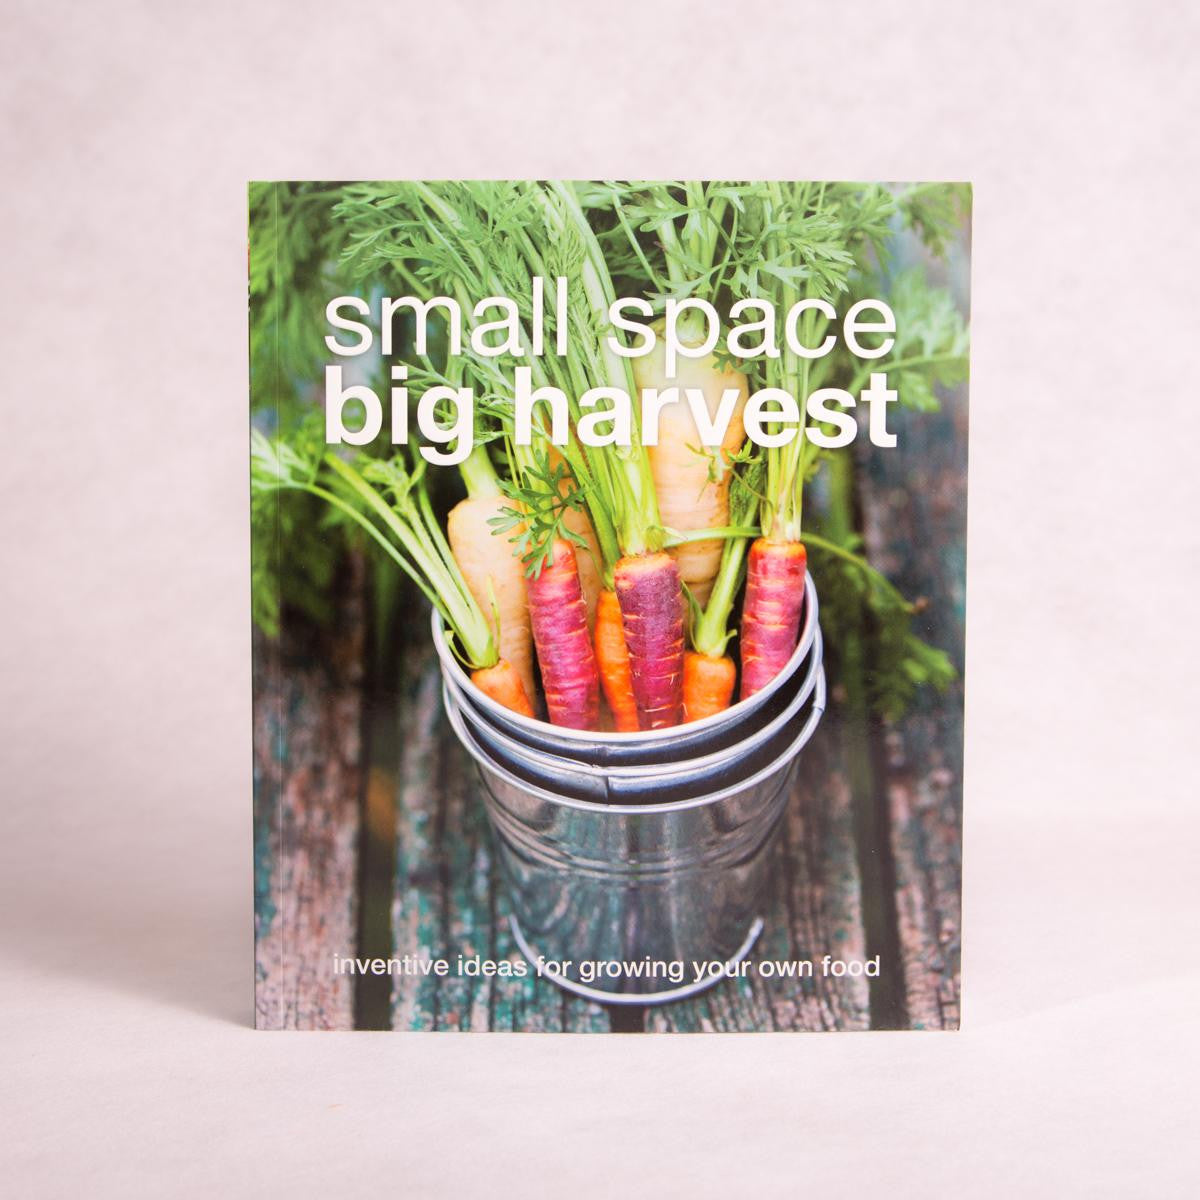 Small Space Big Harvest | By DK - Book - Throw Some Seeds - Australian gardening gifts and eco products online!